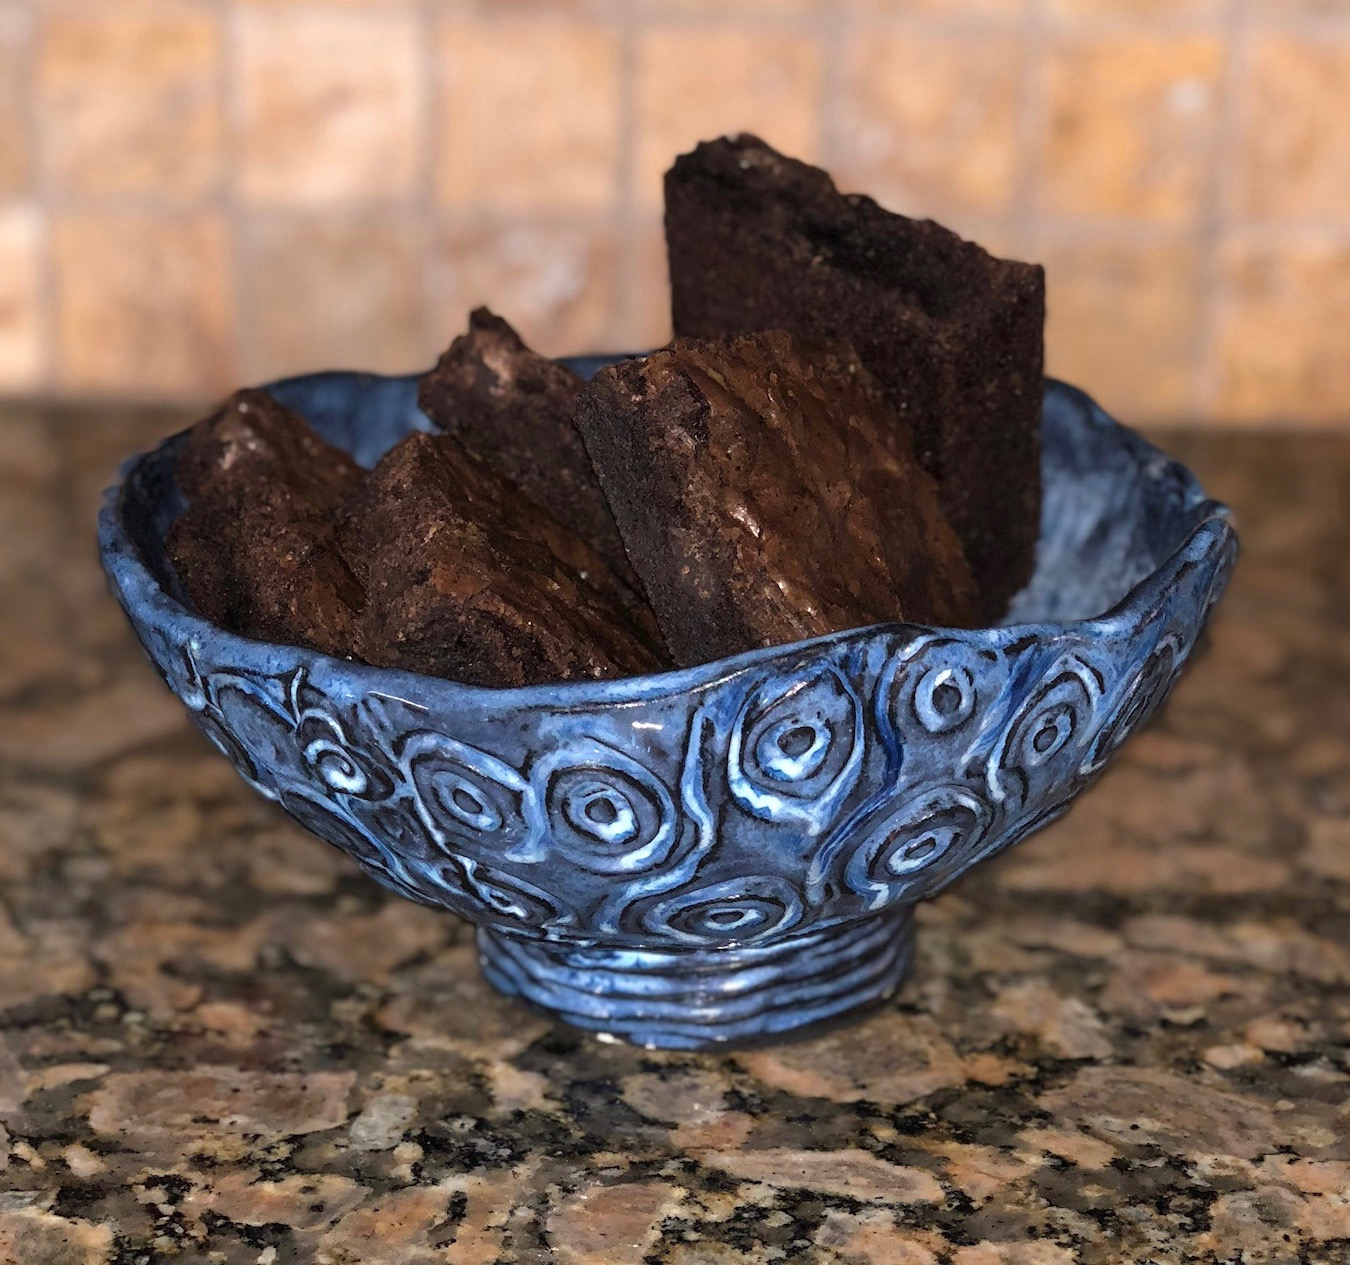 Brownies were the dessert of choice for last night's game!